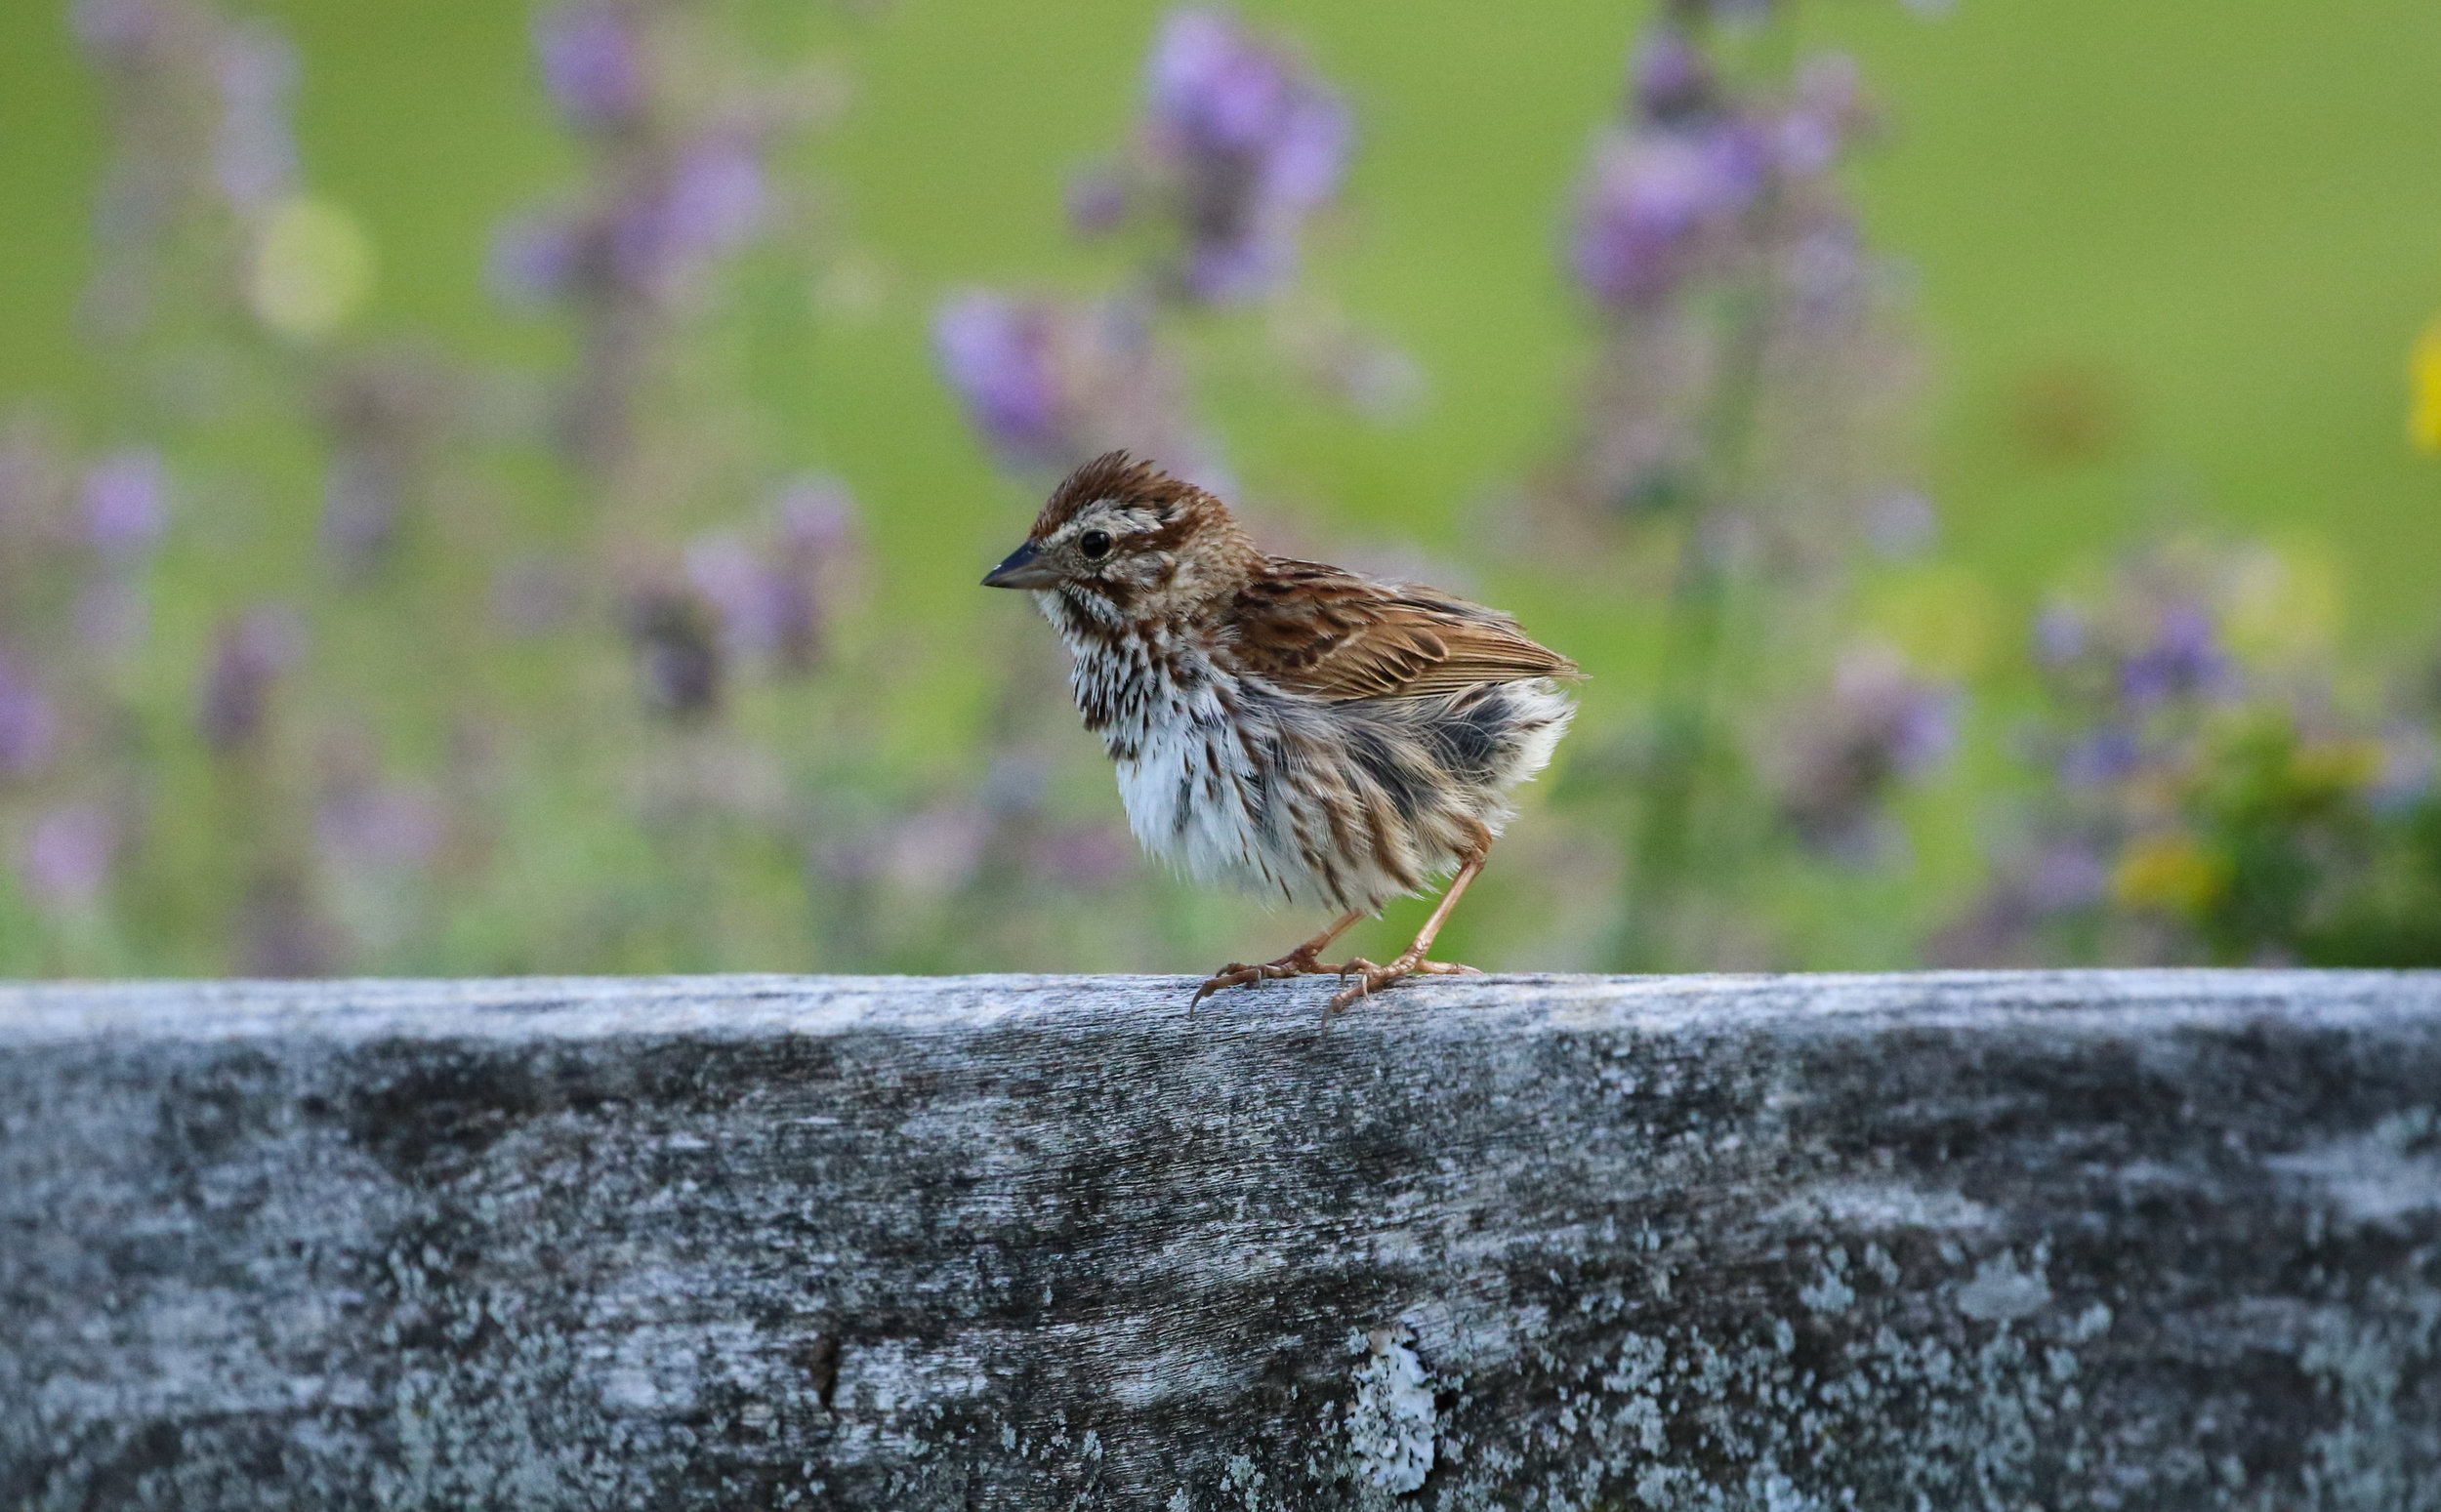 Eastern song sparrow fledgling on bench North Carolina by Millie Kerr-1.jpg